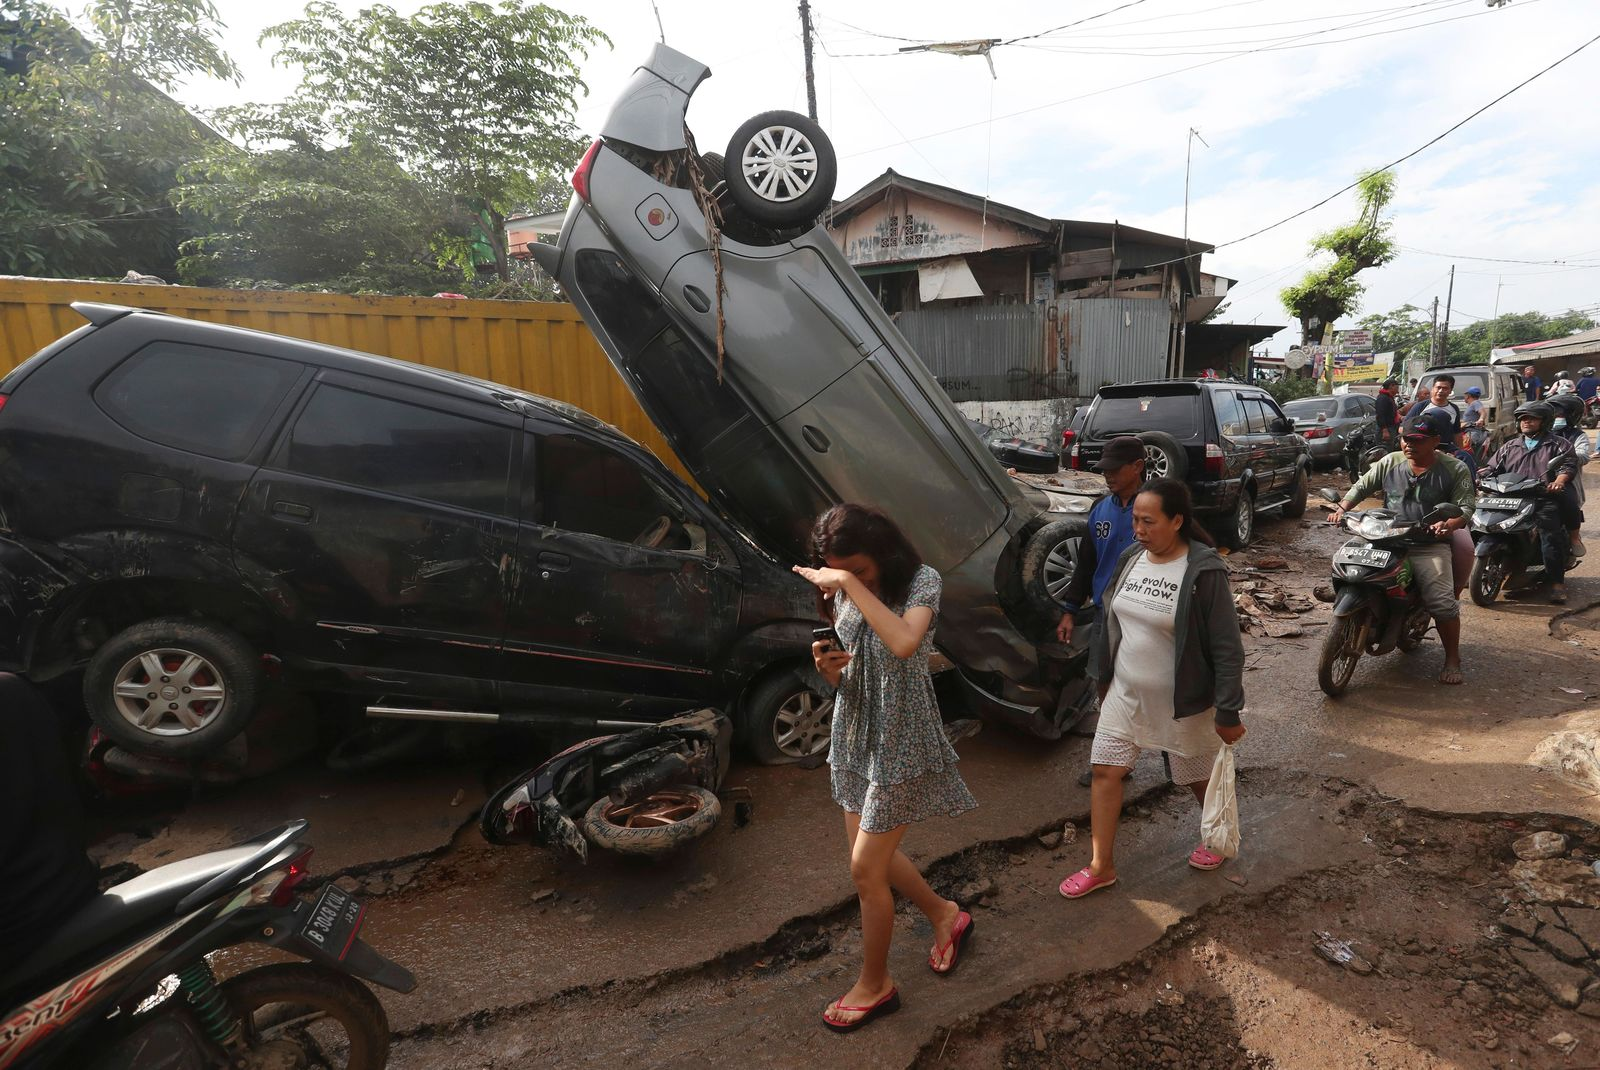 Residents walk near the wreckage of cars that were swept away by flood in Bekasi, West Java, Indonesia, Friday, Jan. 3, 2020.Severe flooding in greater Jakarta has killed scores of people and displaced tens of thousands others, the country's disaster management agency said. (AP Photo/Achmad Ibrahim)